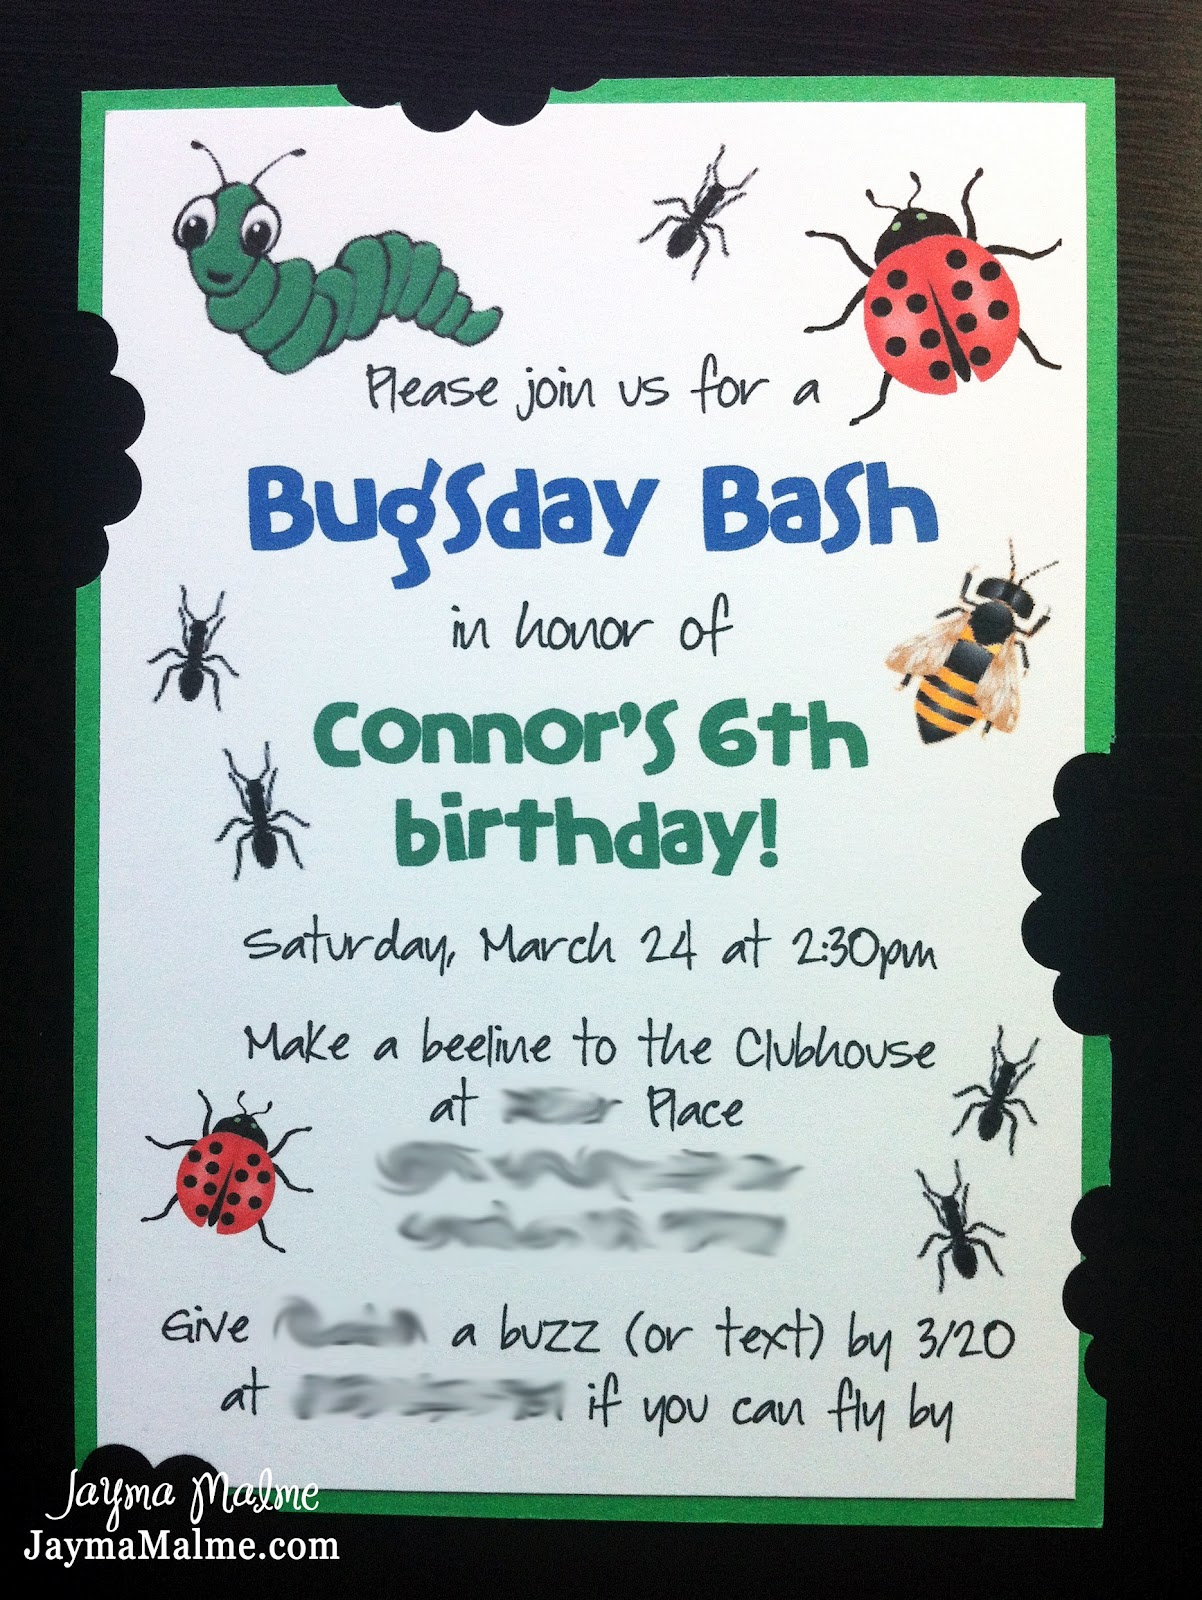 Playing with Paper: Scrapbooks, Cards & DIY: Happy Bugsday - Boy's 6th Birthday Invitation ...